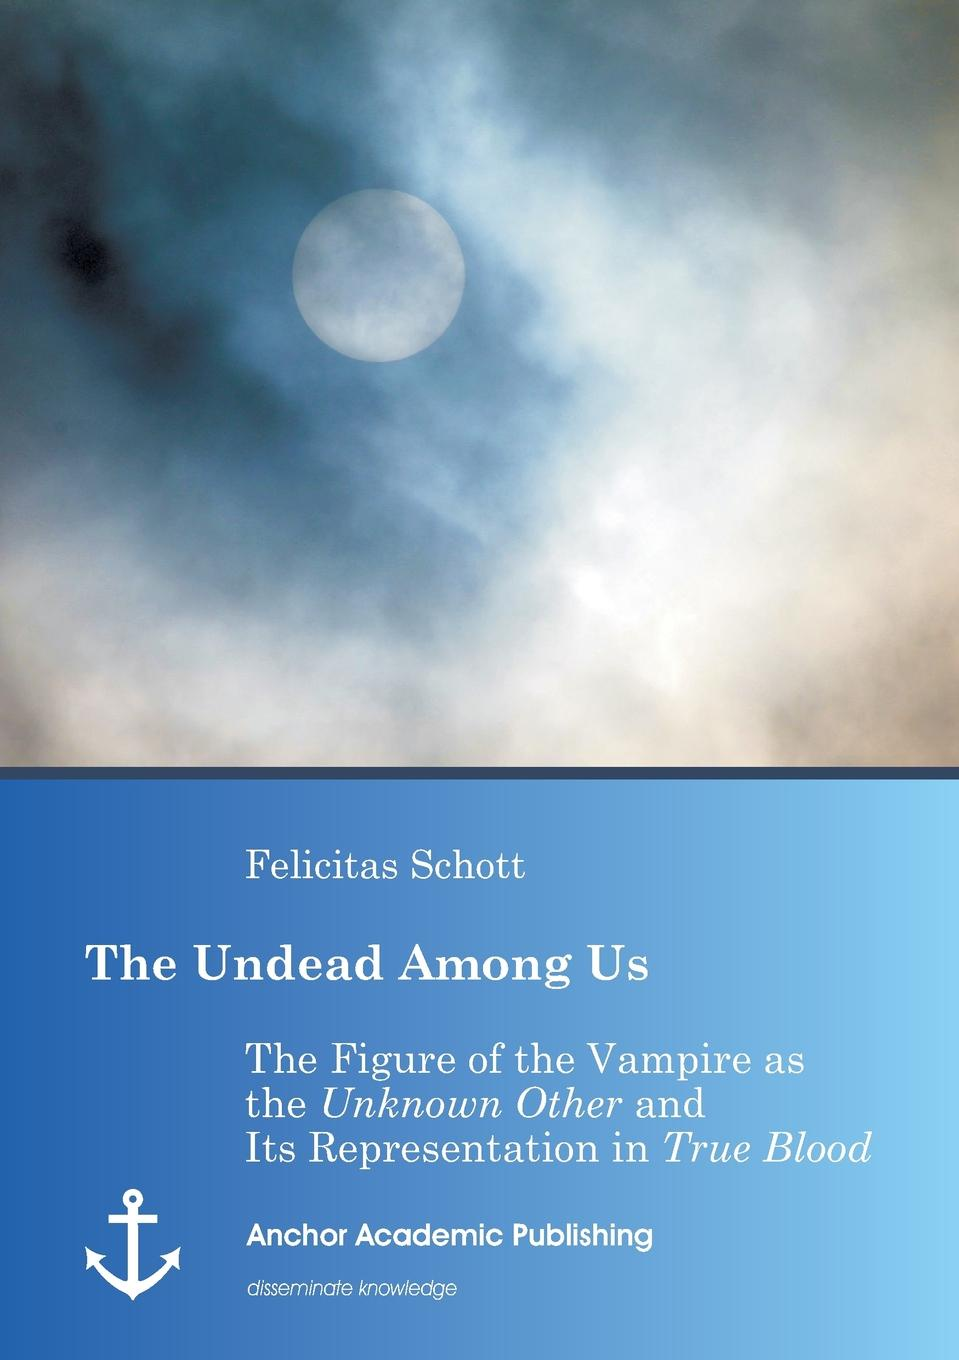 Felicitas Schott The Undead Among Us - The Figure of the Vampire as the Unknown Other and Its Representation in True Blood varney the vampire or the feast of blood one volume edition